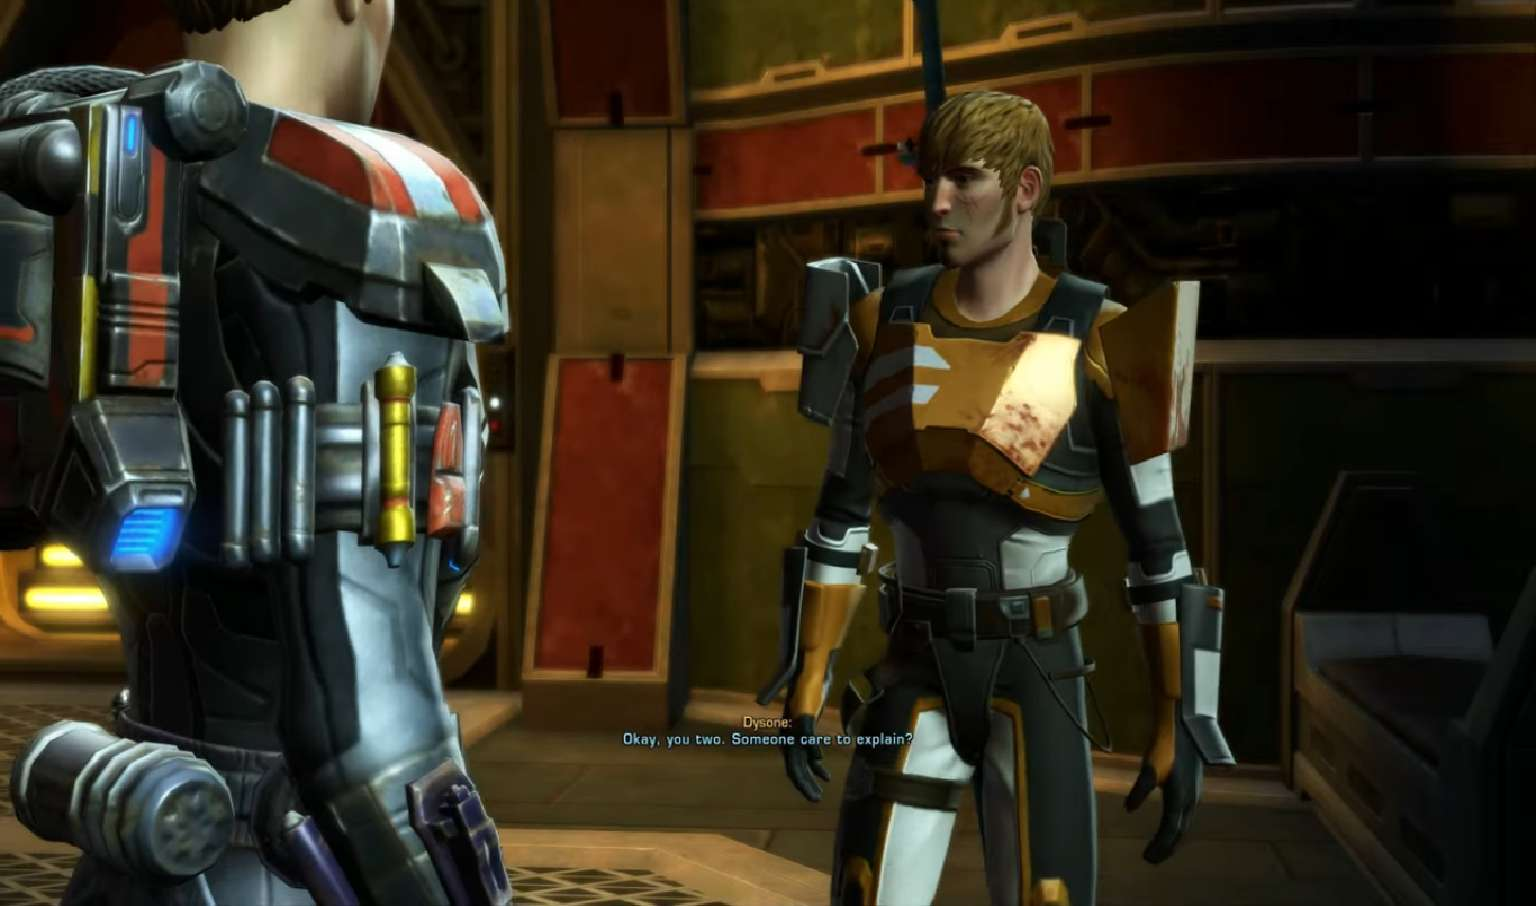 Star Wars The Old Republic Producer Keith Kanneg Talks About Content To Come